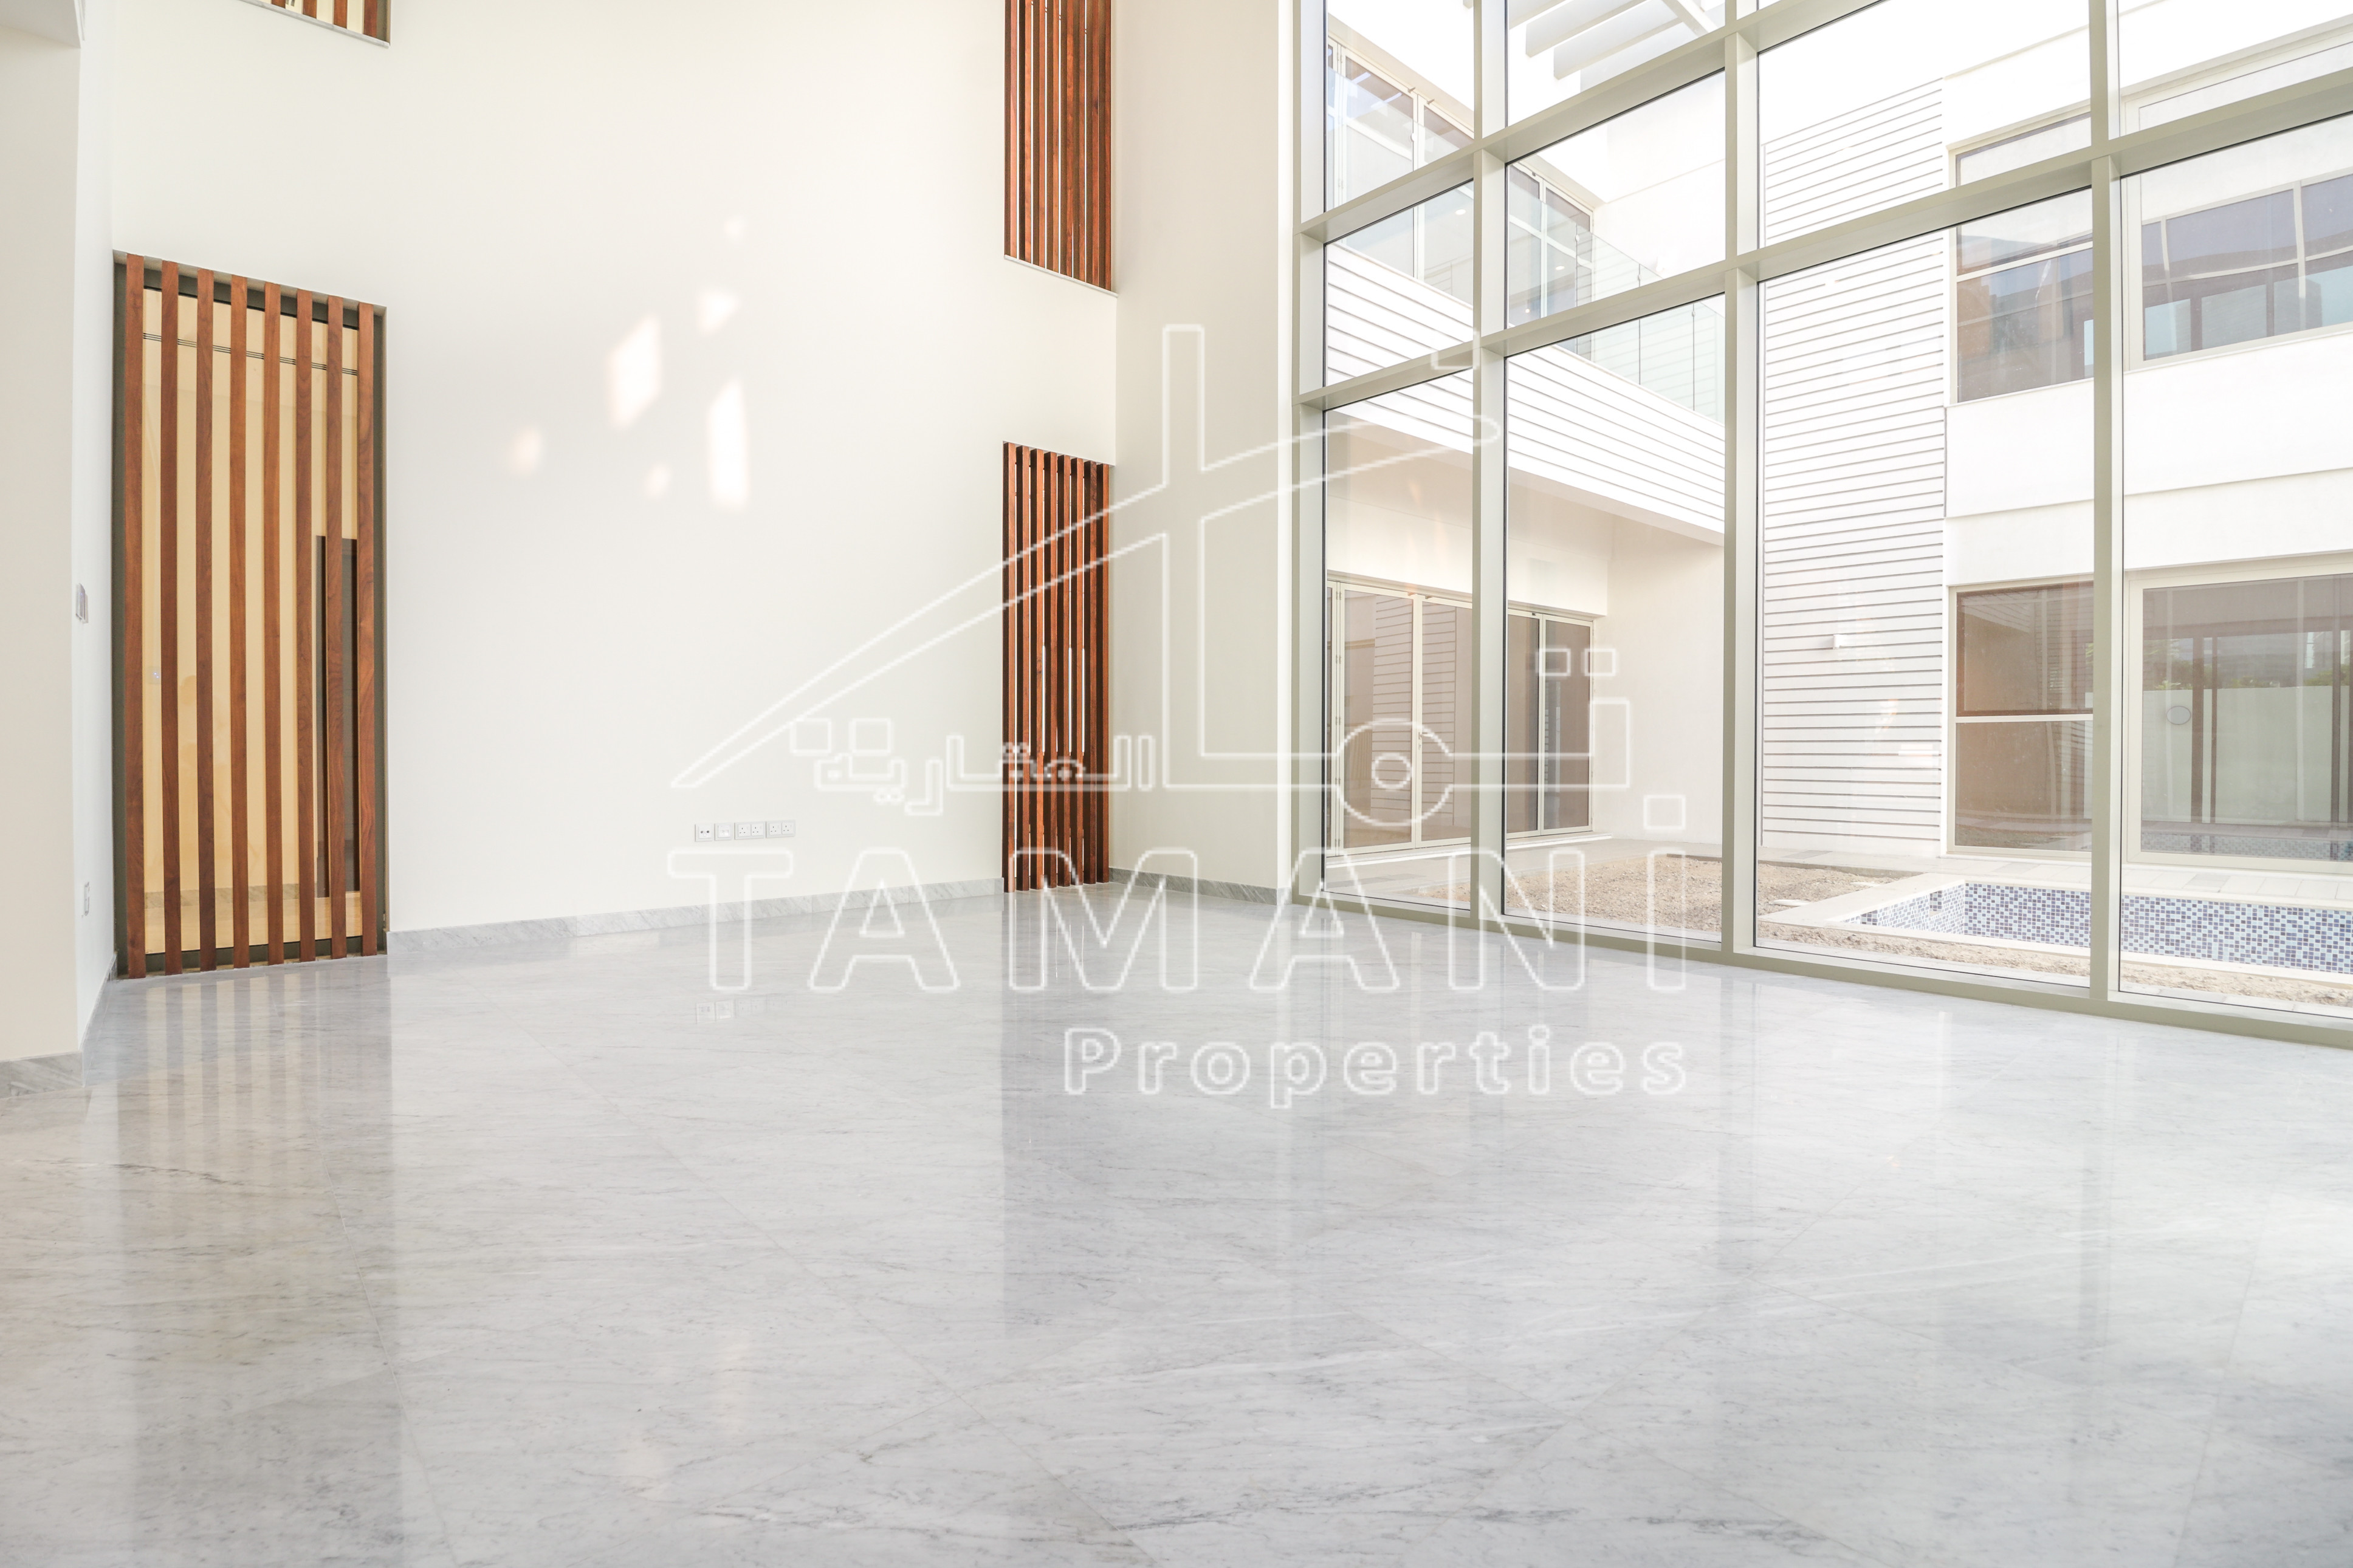 Type B With Elevator 5Bed R Contemporary - District One